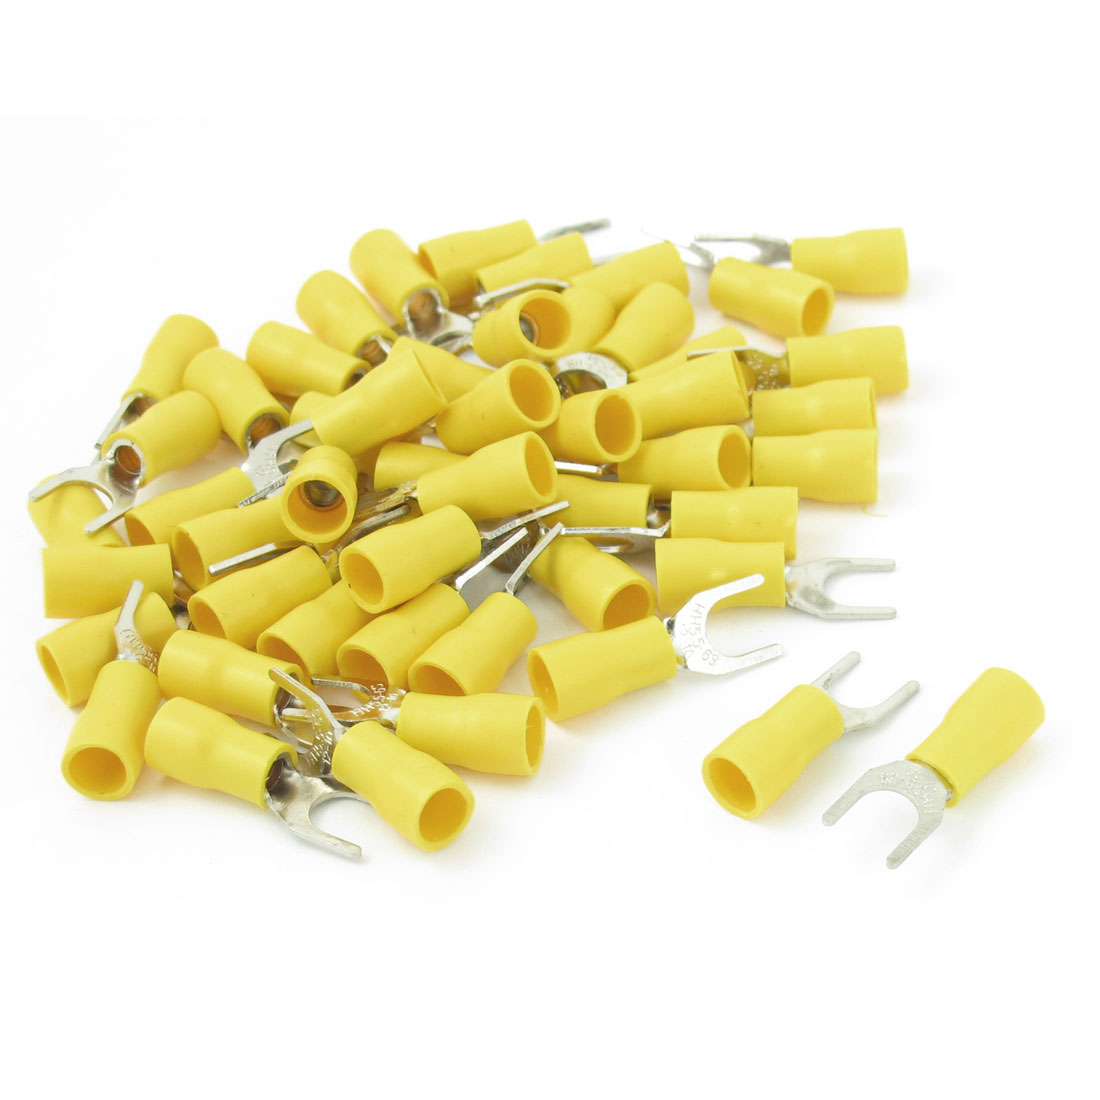 50 Pcs Yellow 6.5mm Bolt Furcate Pre Insulated Fork Terminal AWG12-10